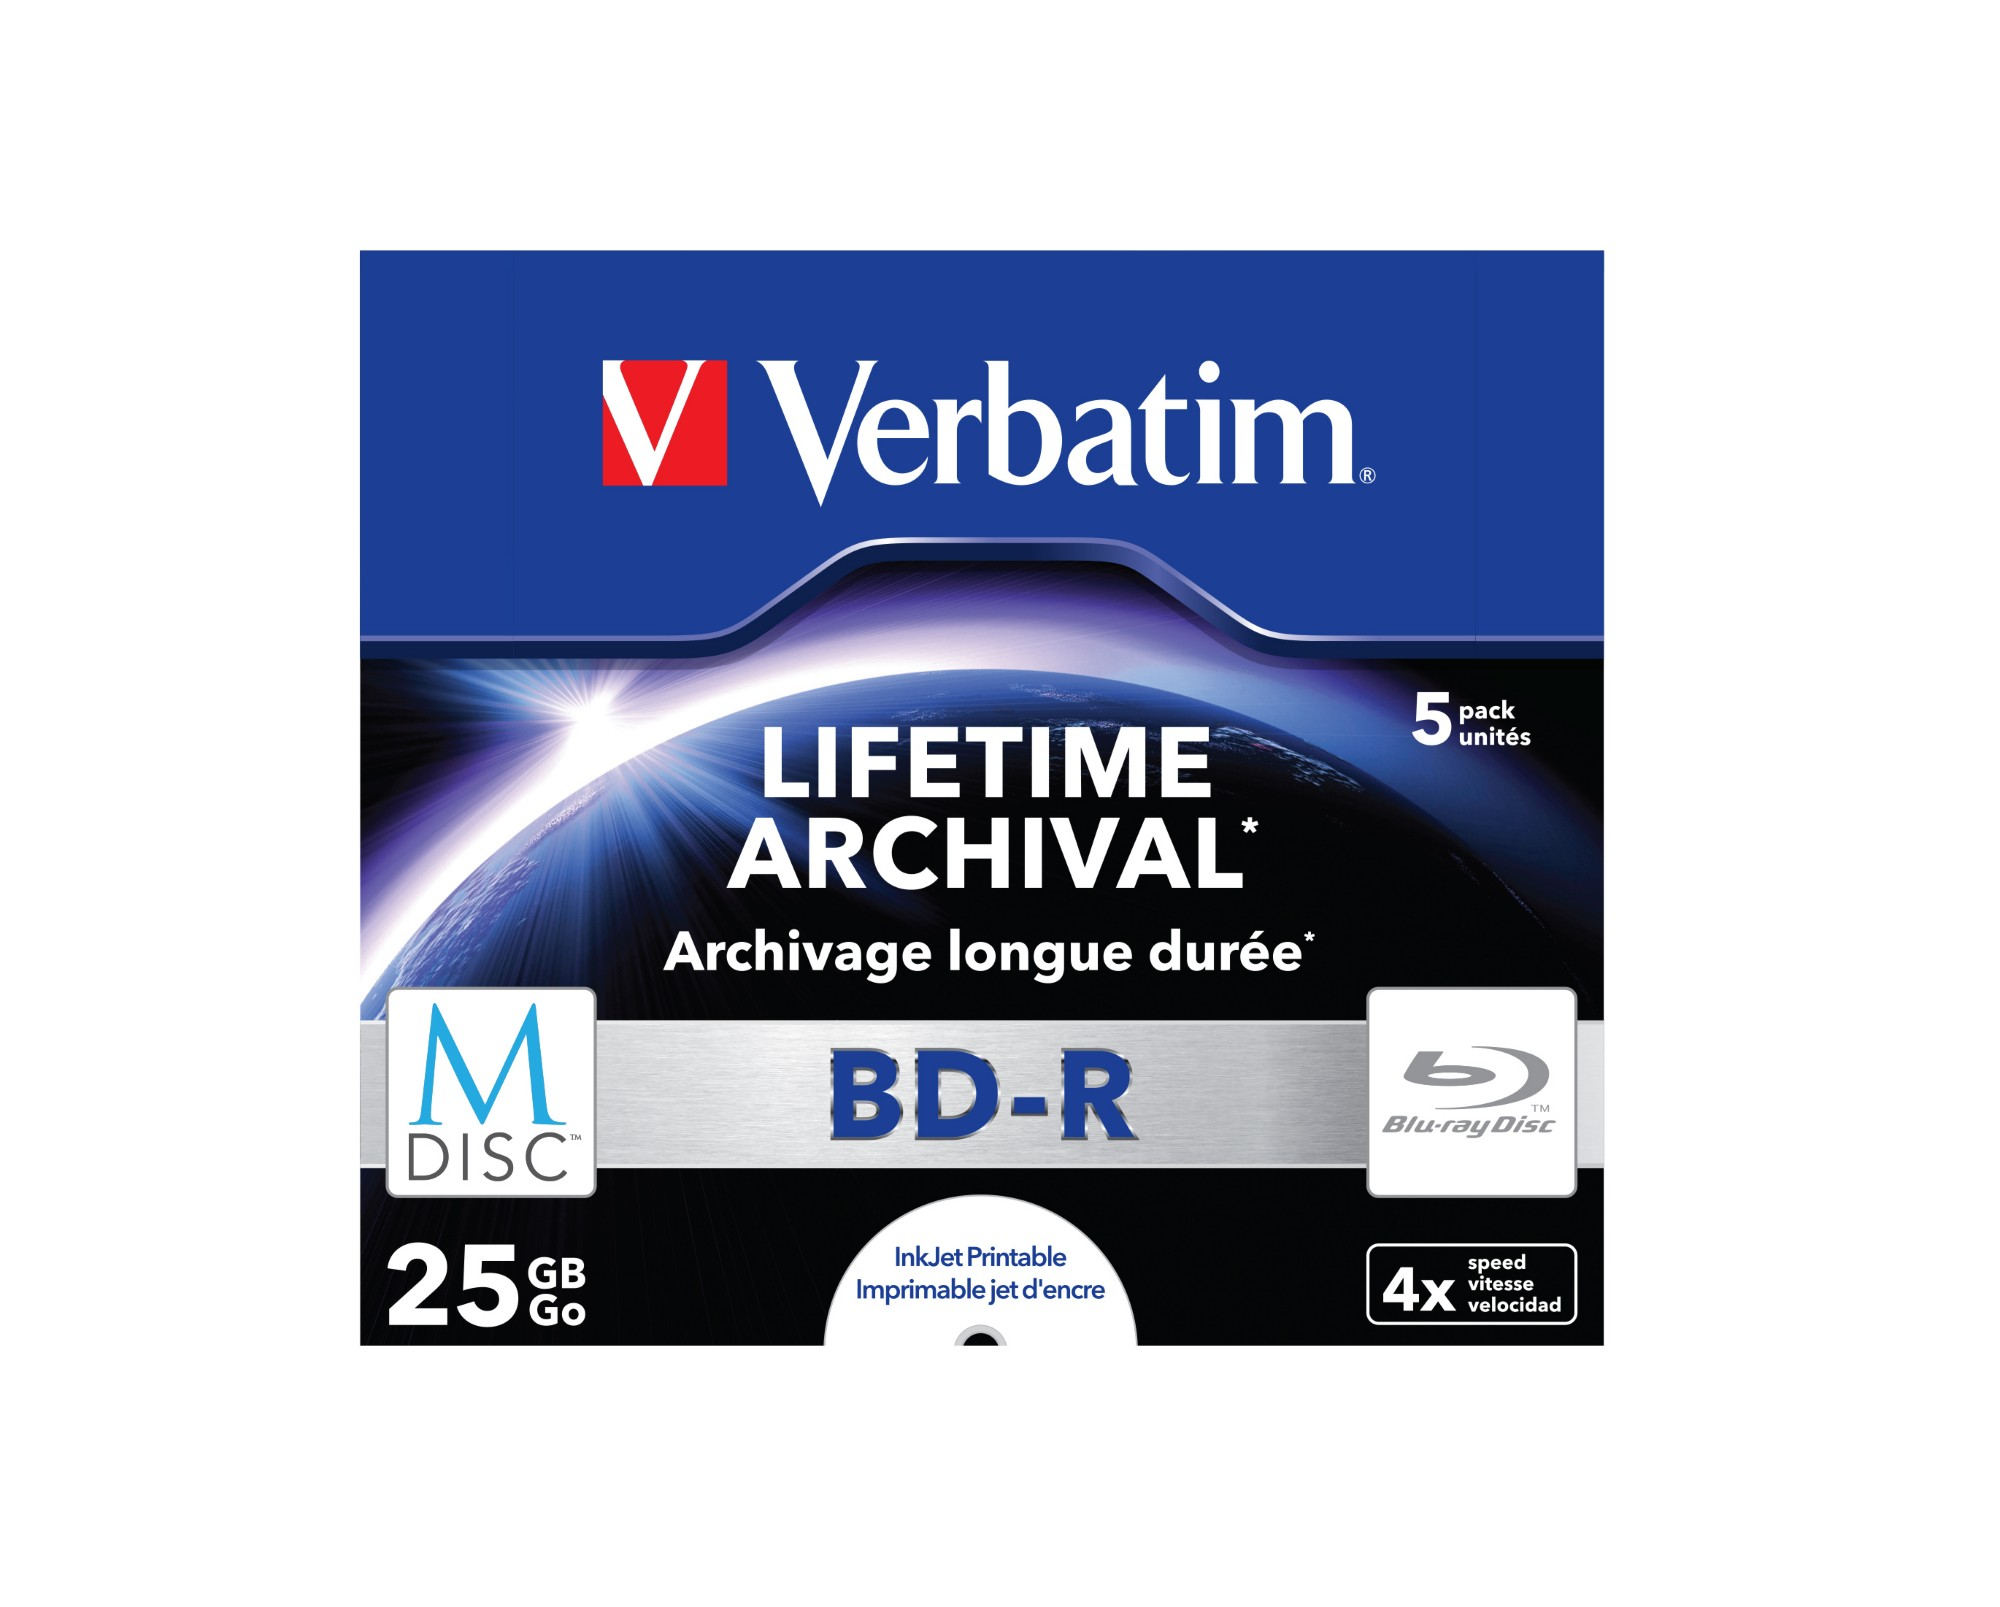 VERBATIM 43823 M-DISC 4X BD-R 25GB 5PC(S)